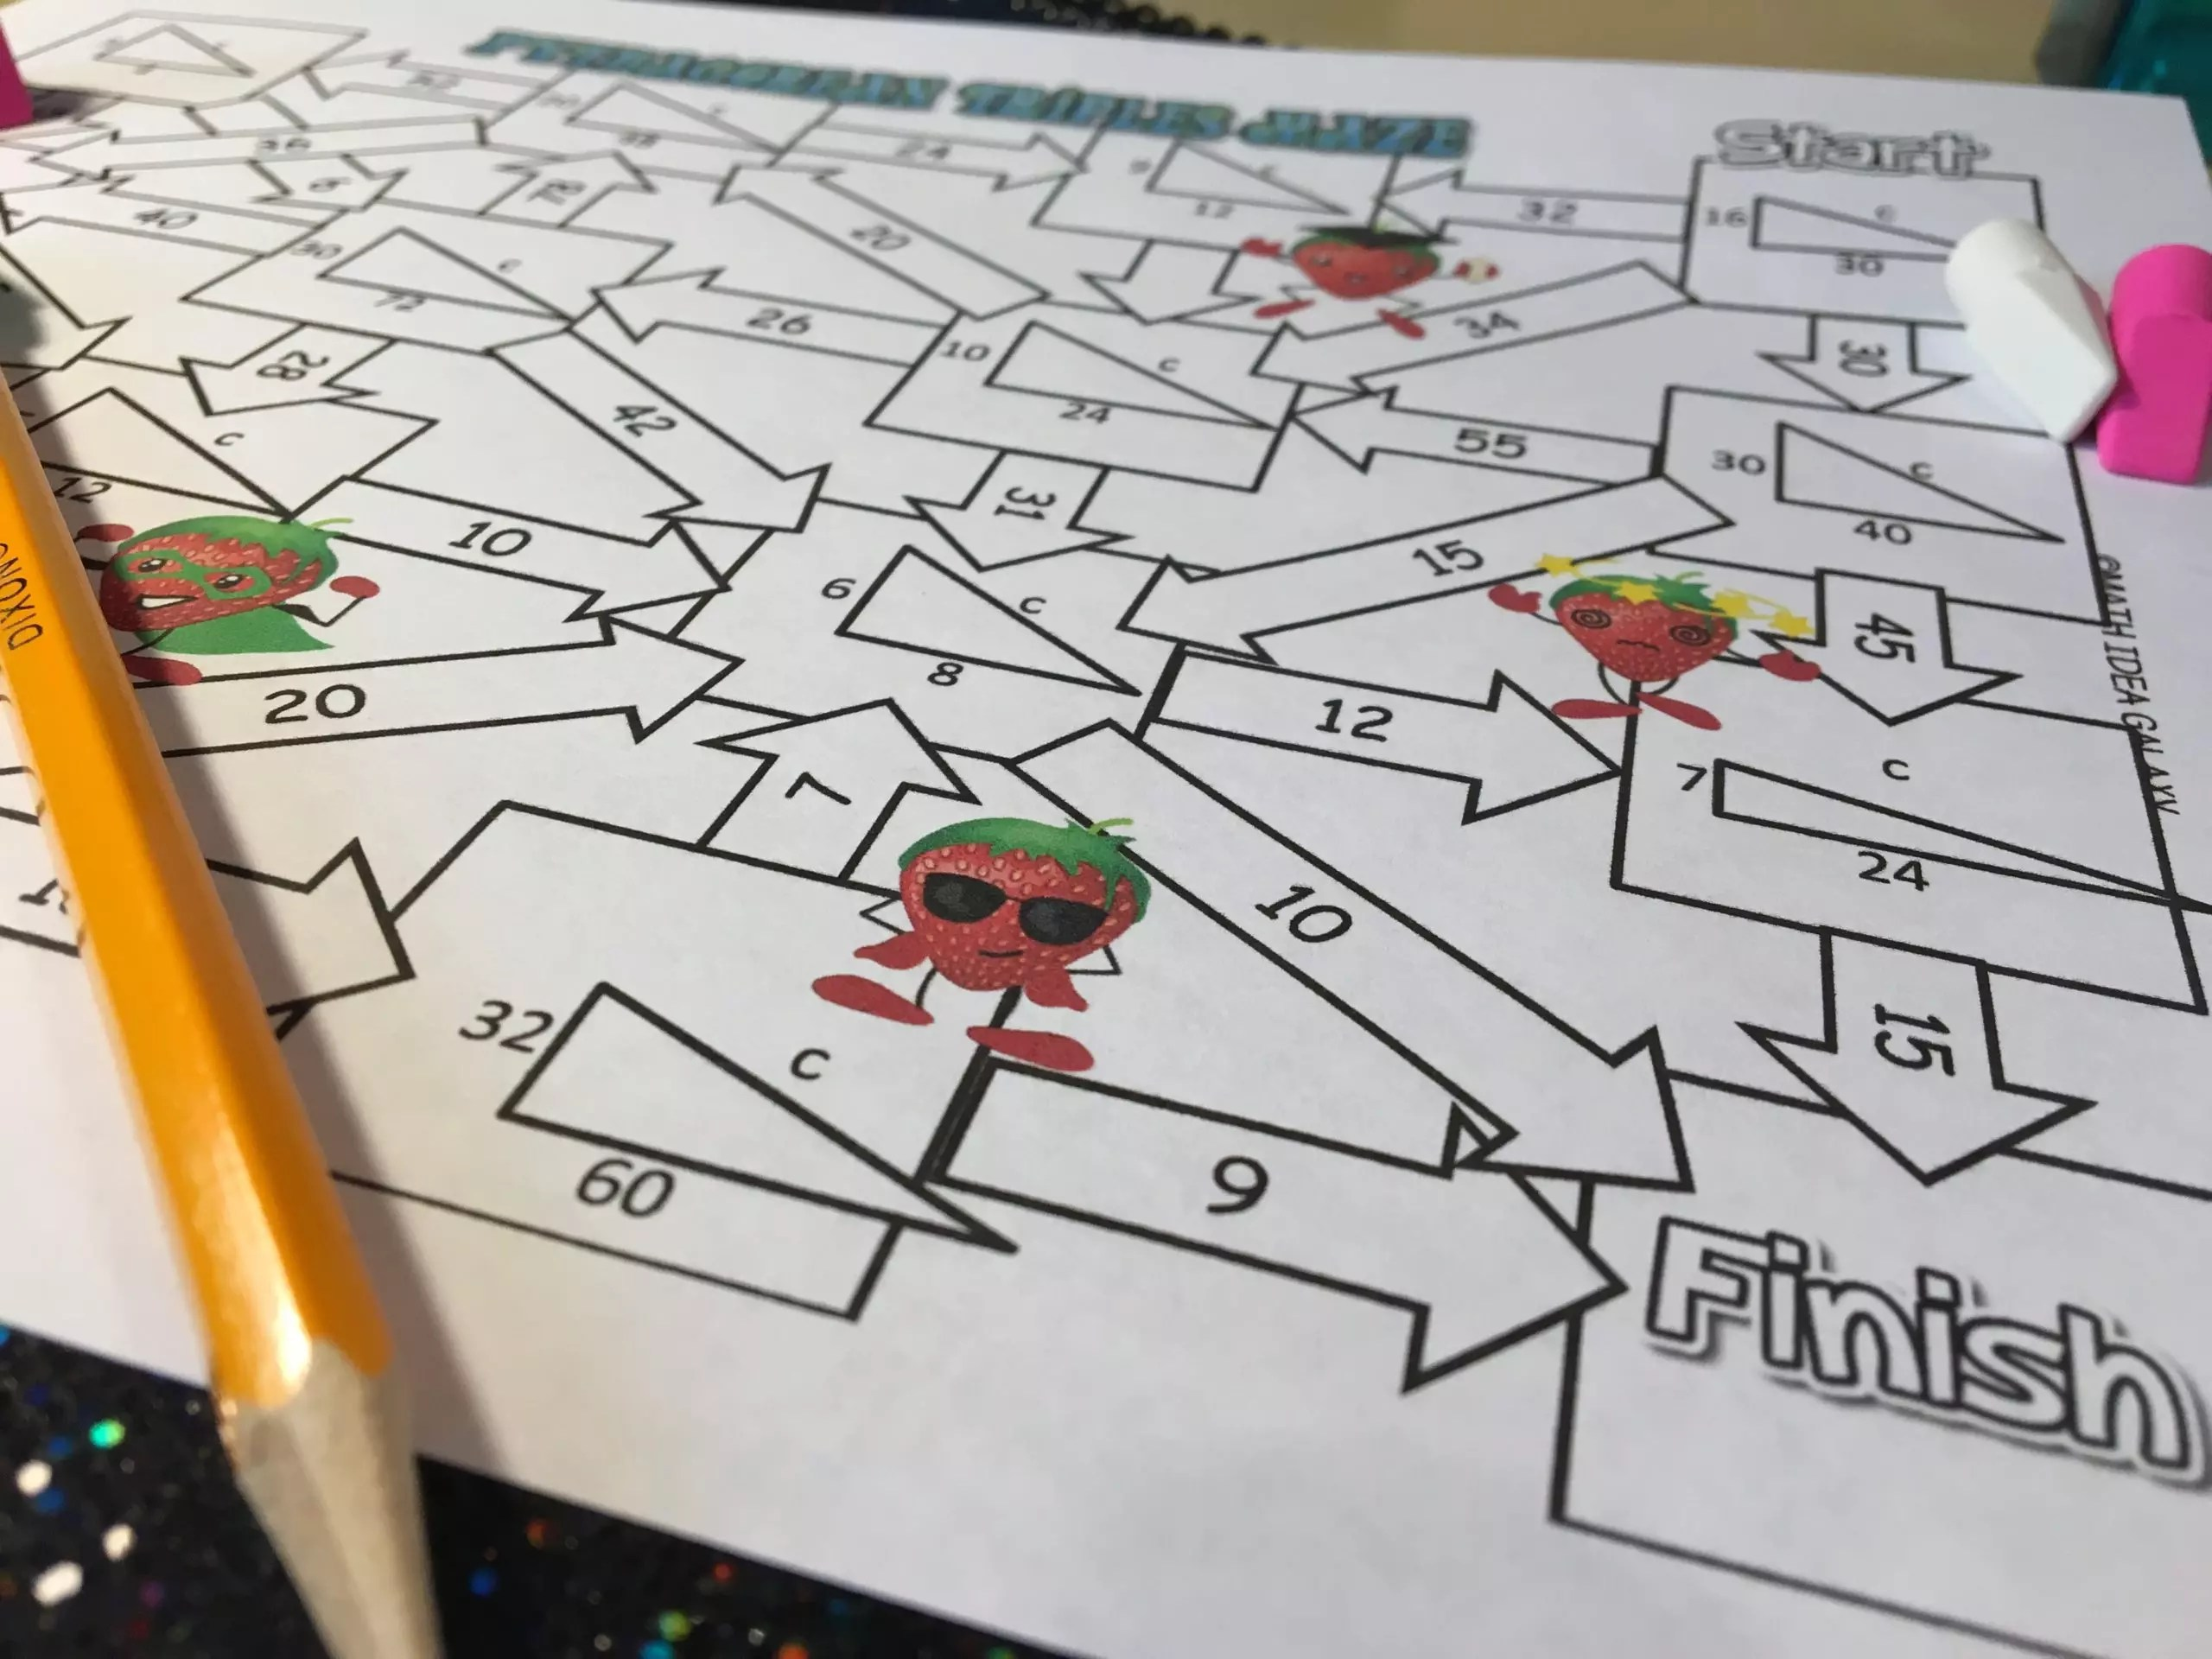 13 Pythagorean Theorem Activities For Your Classroom